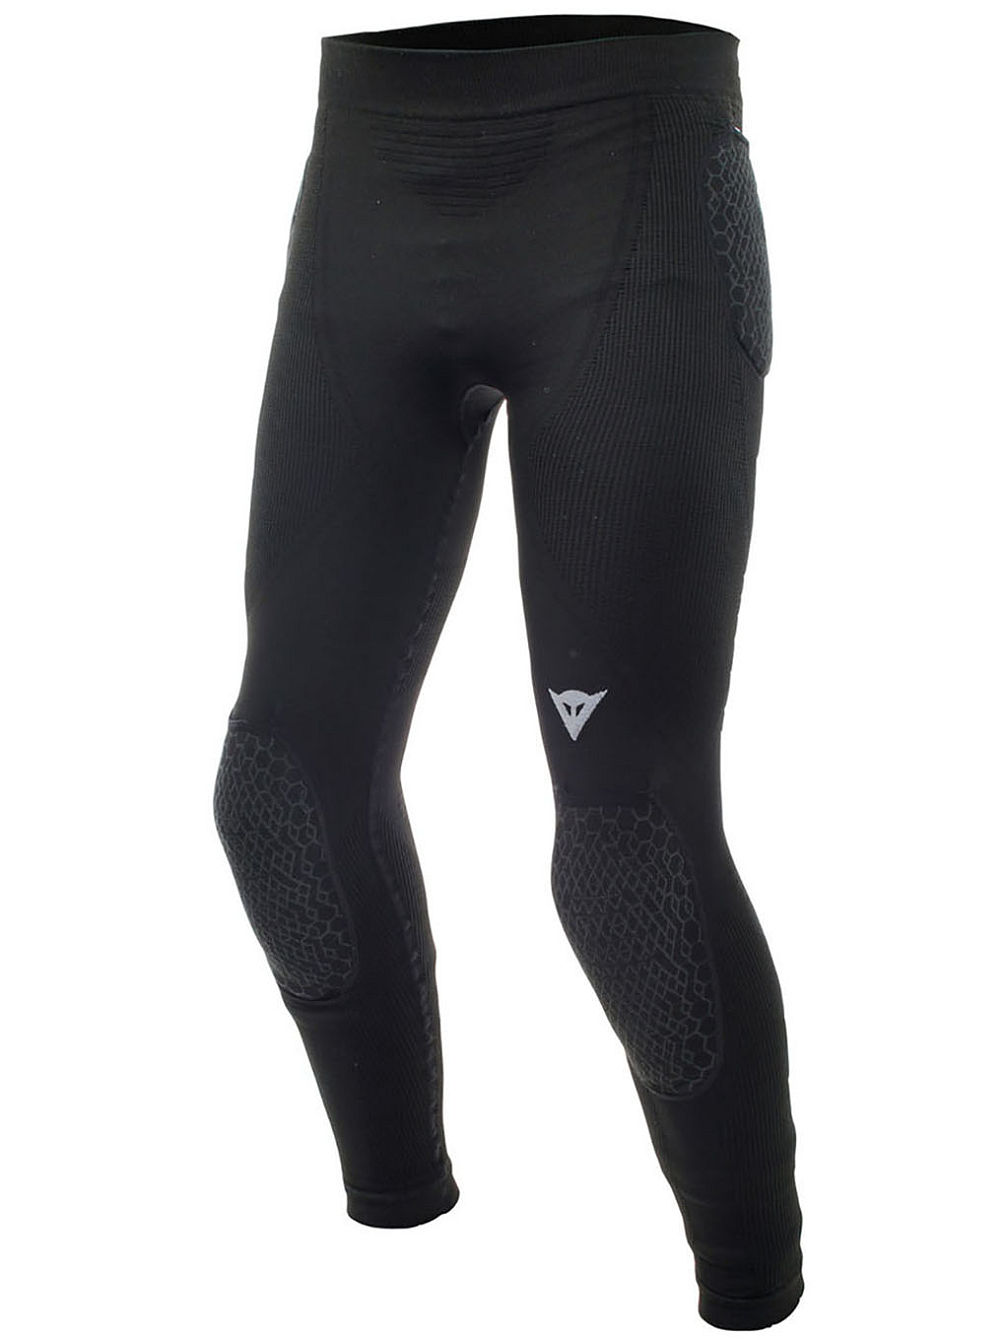 Trailknit Pro Armor Pants Winter